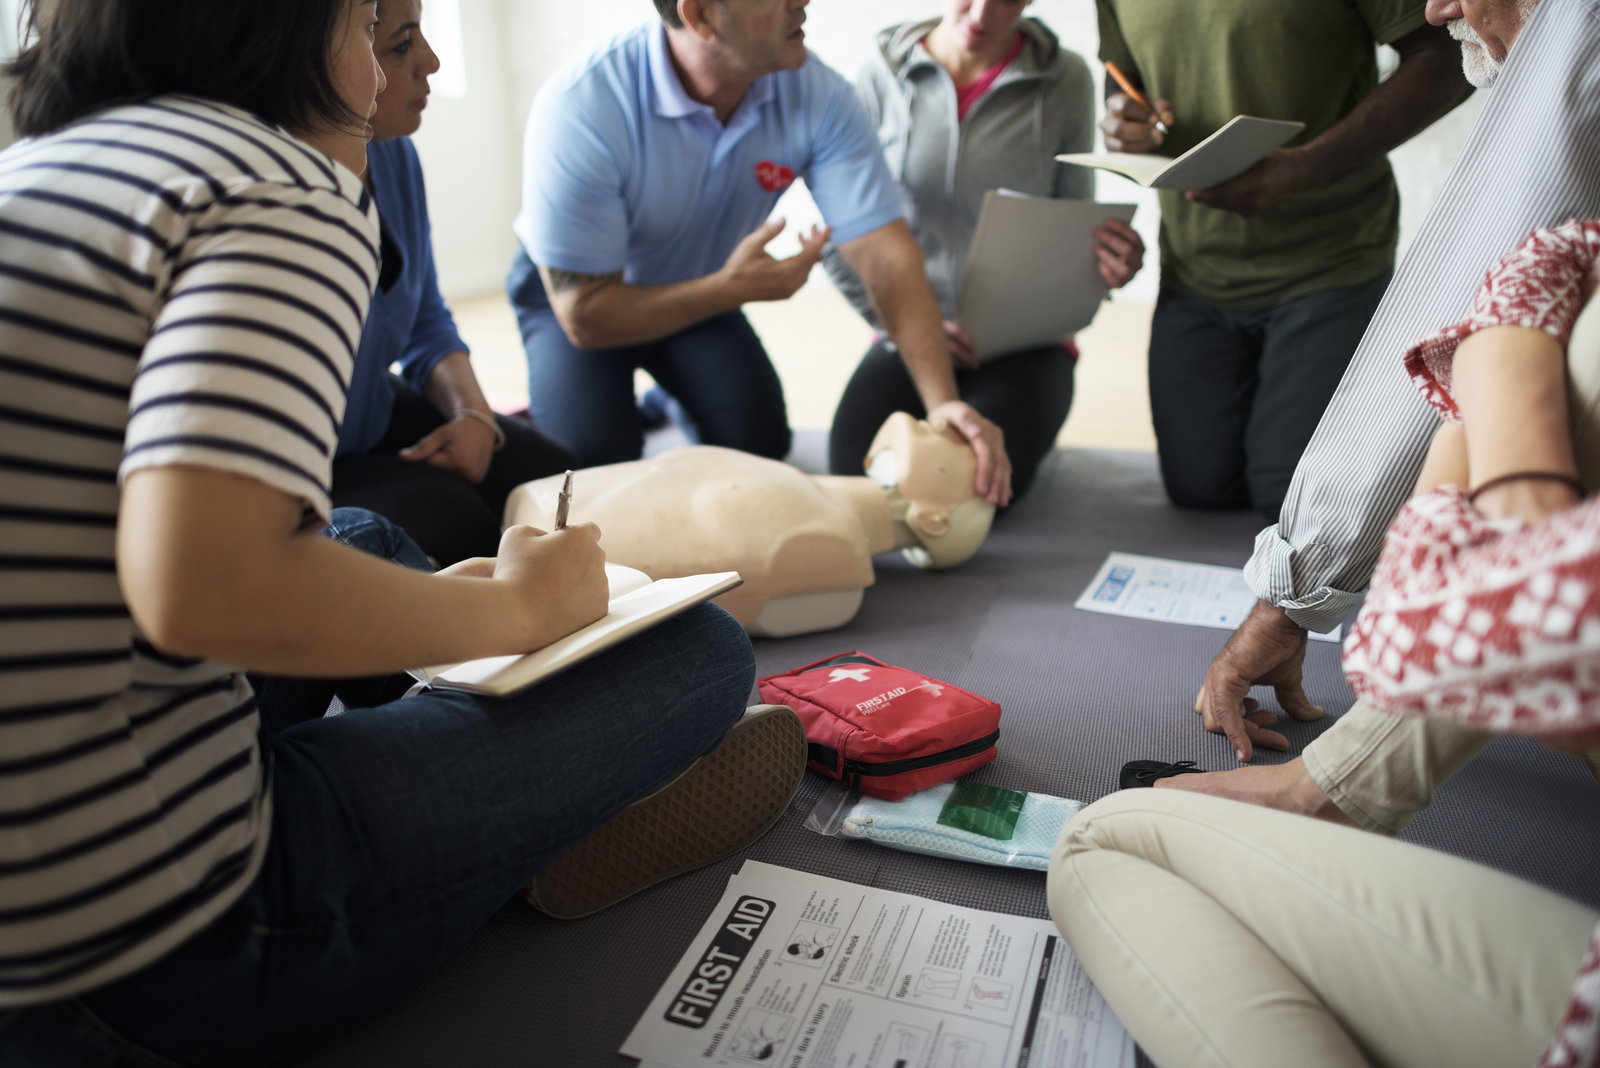 Tips On Becoming A CPR Certified Through Taking CPR Courses